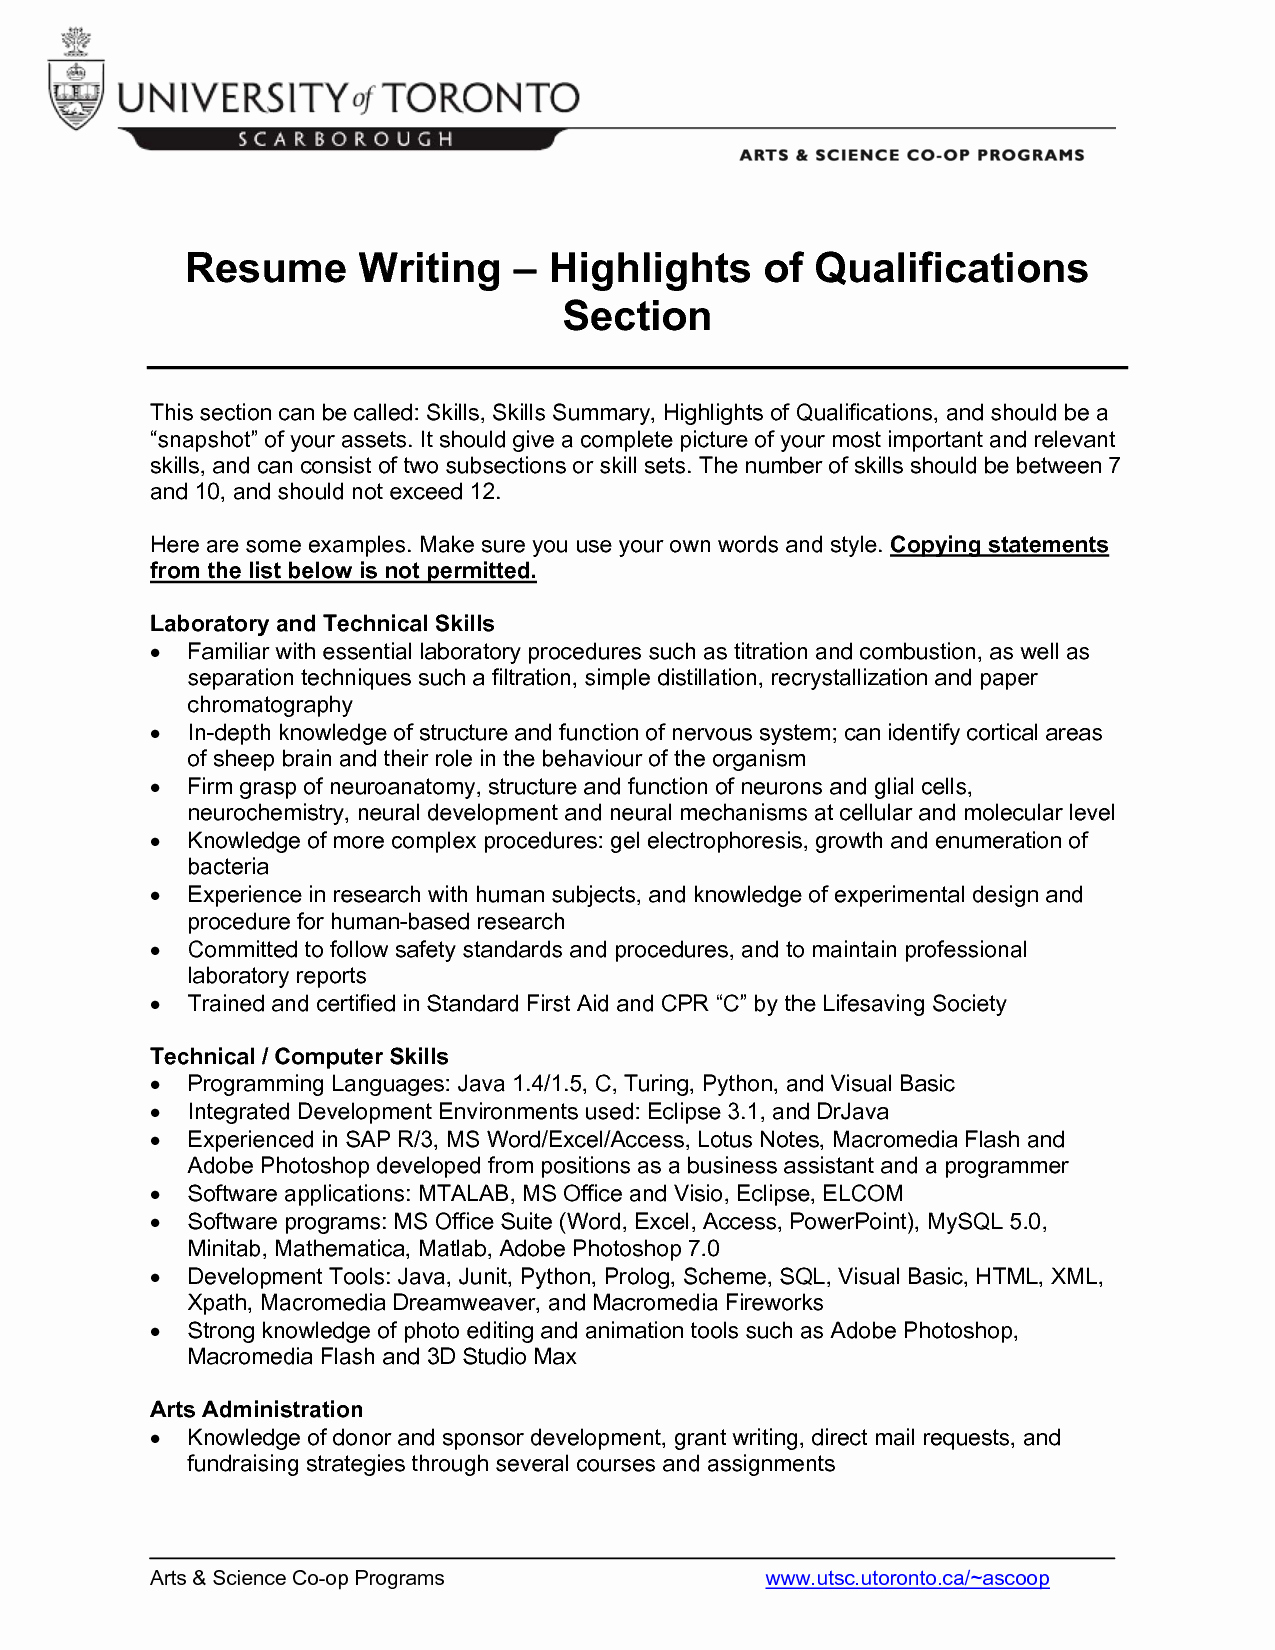 Puter Skills Qualifications Resume